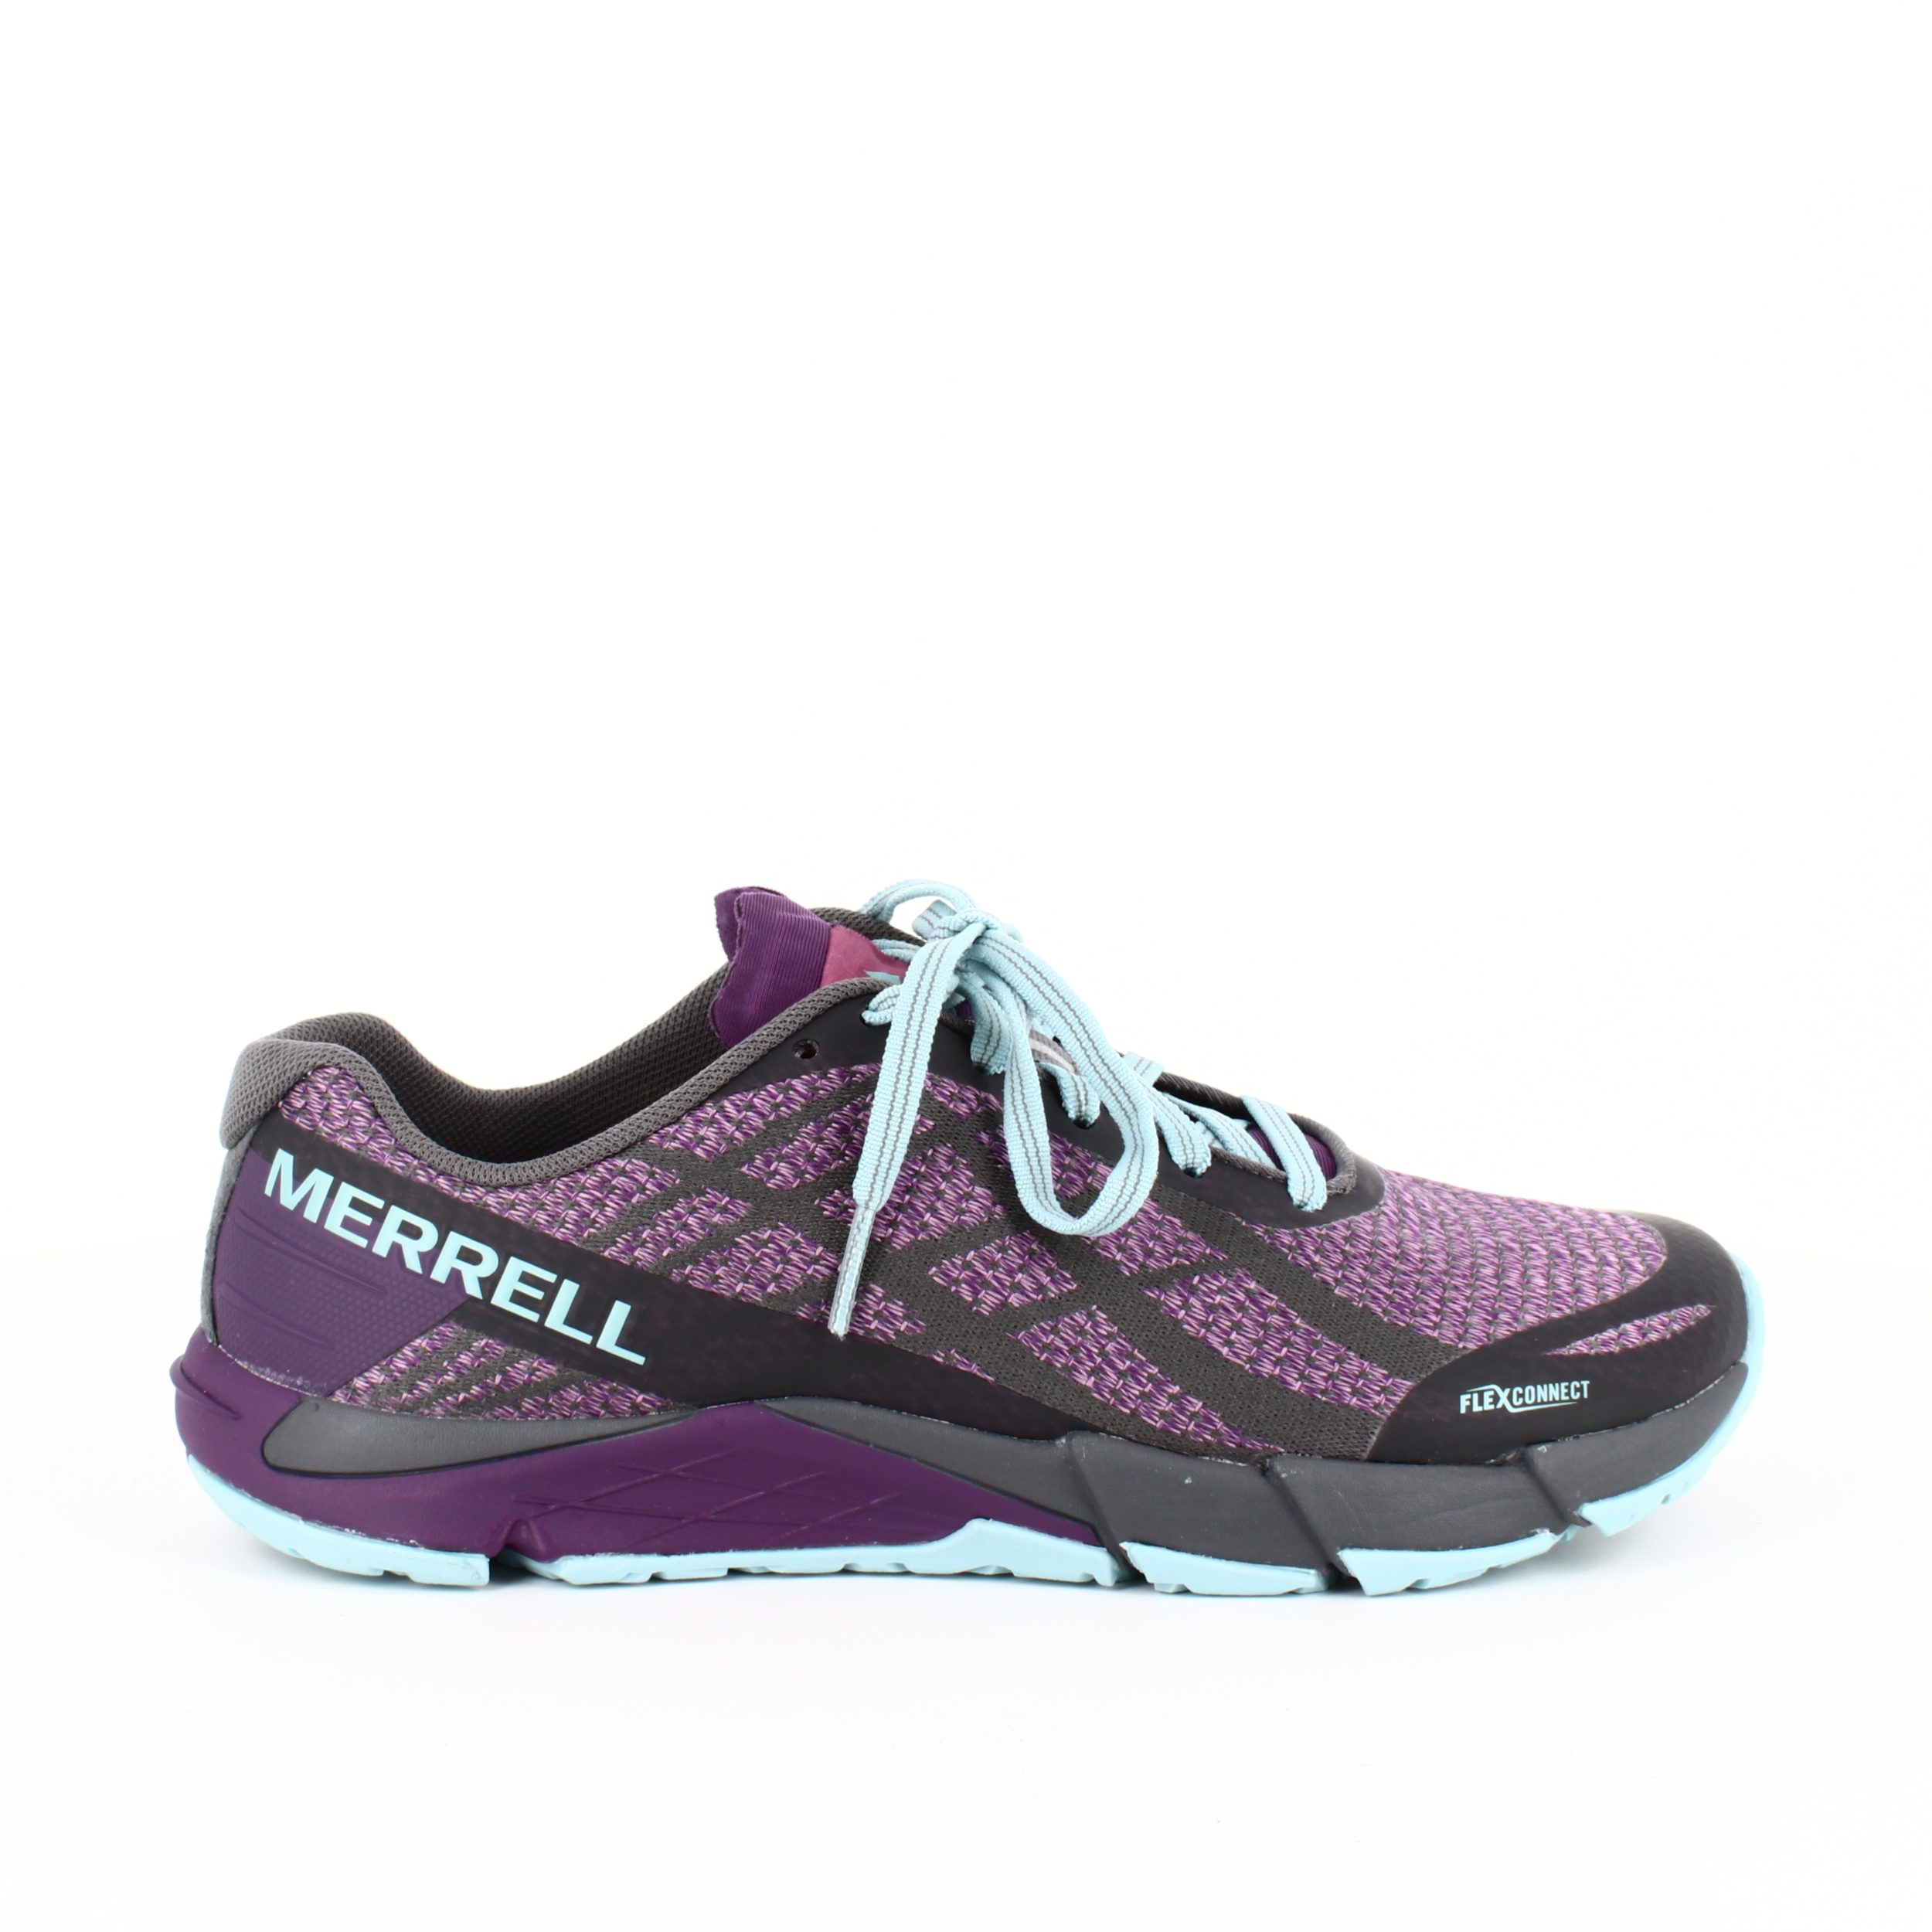 Image of   Merrell sneakers med flex shield og bare foot teknologi - 37